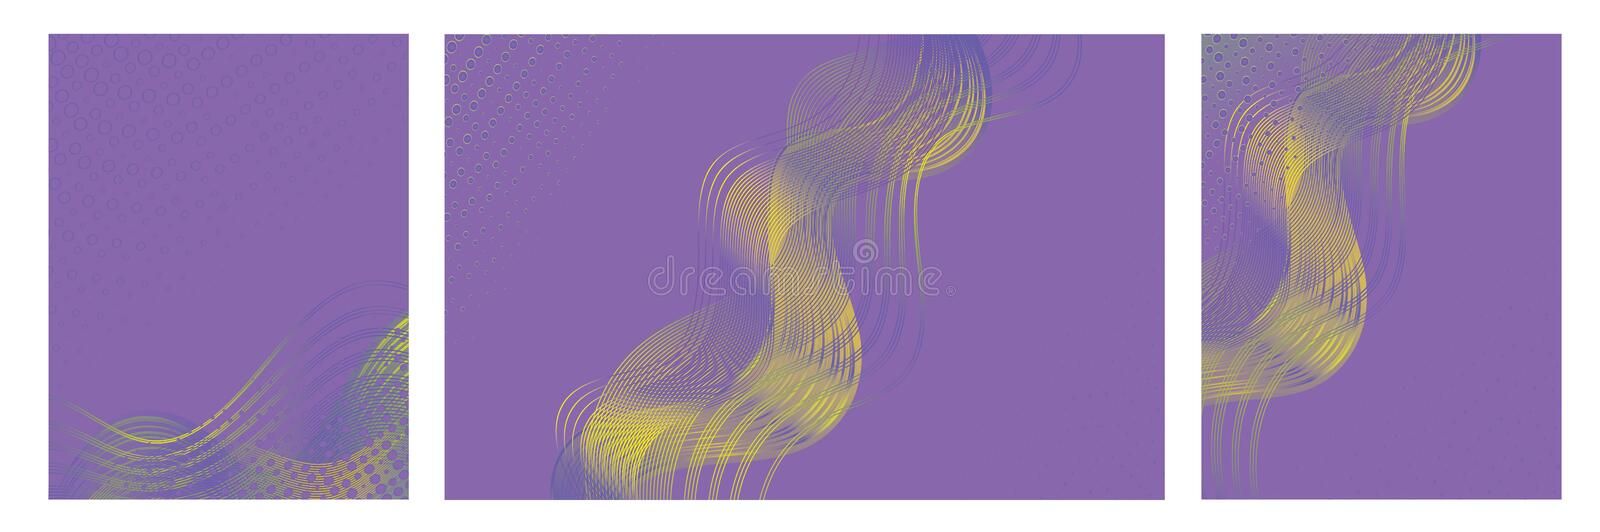 Abstract  backgrounds with trendy colorful design for brochures, posters, presentations and banners. stock illustration